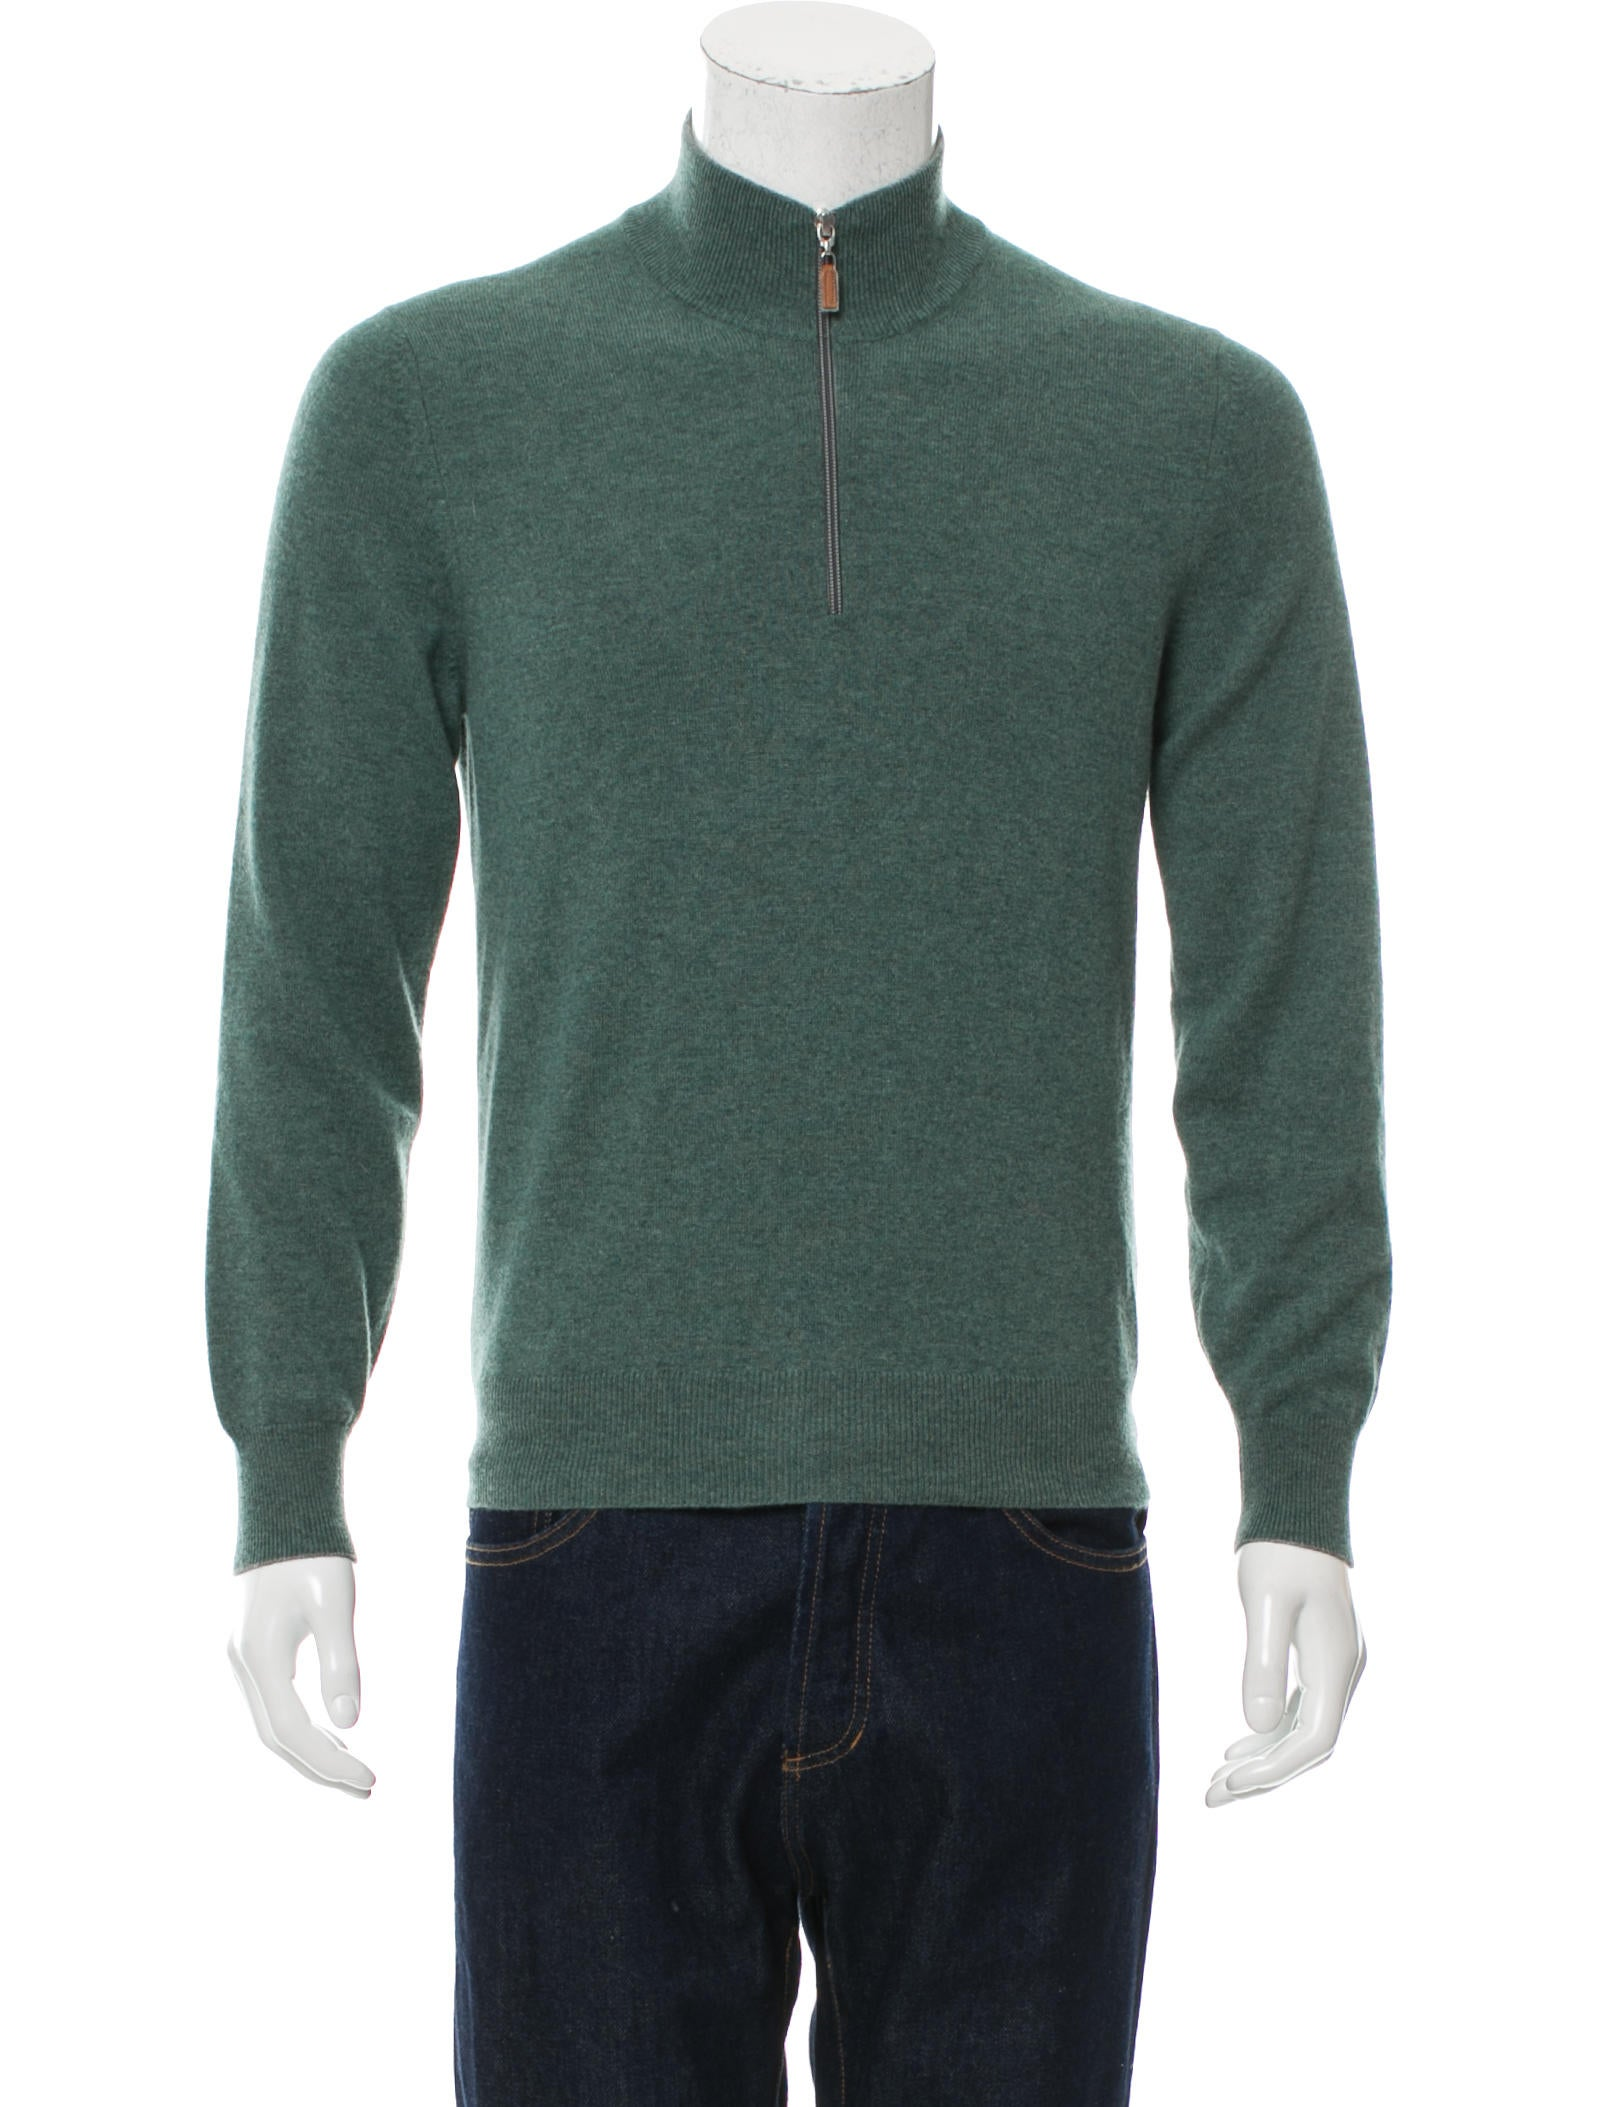 Brunello Cucinelli Cashmere Half-Zip Sweater - Clothing - BRU43586 | The RealReal